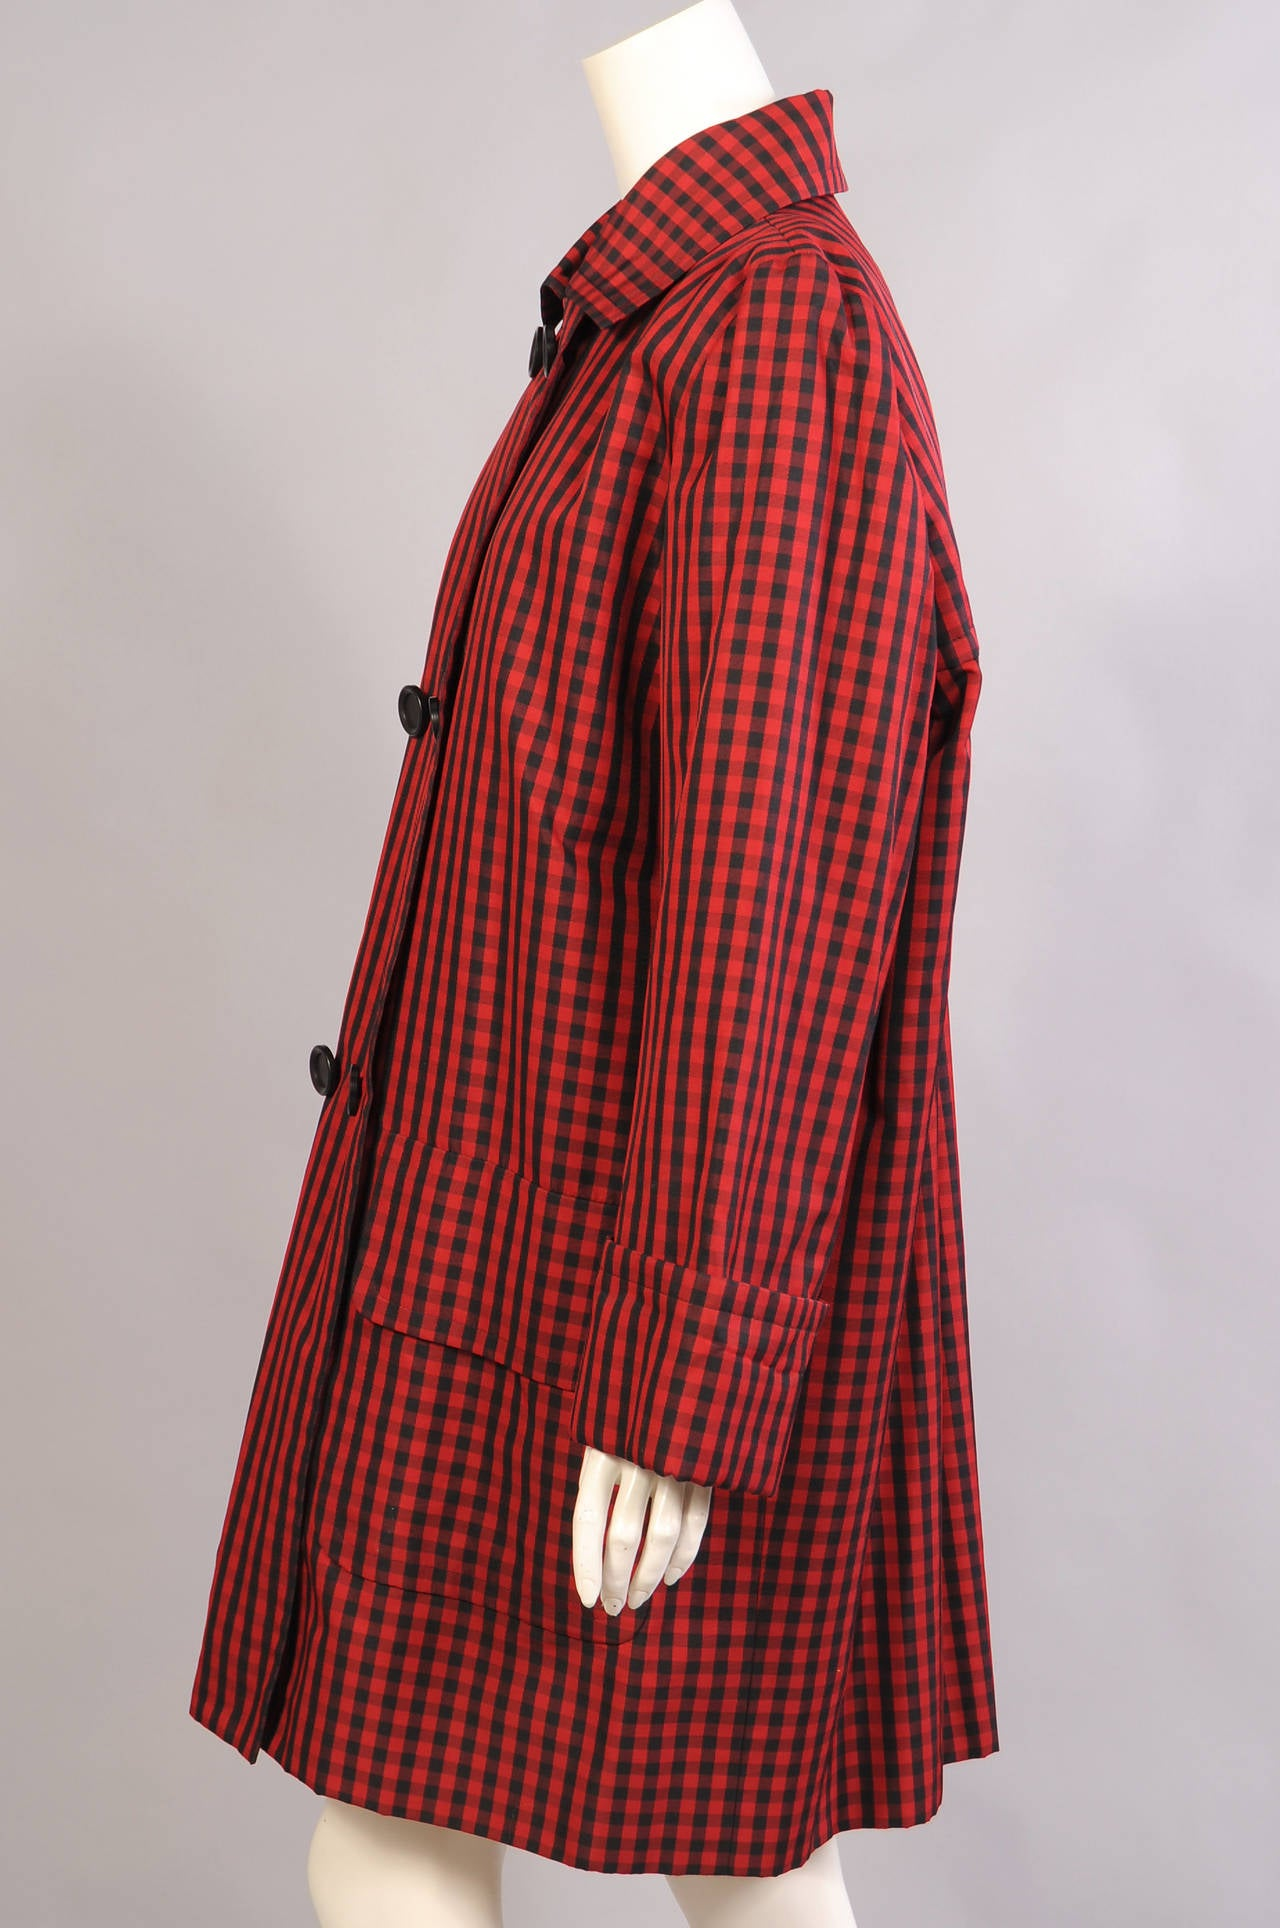 Givenchy haute couture red and black silk coat at 1stdibs for Haute couture red